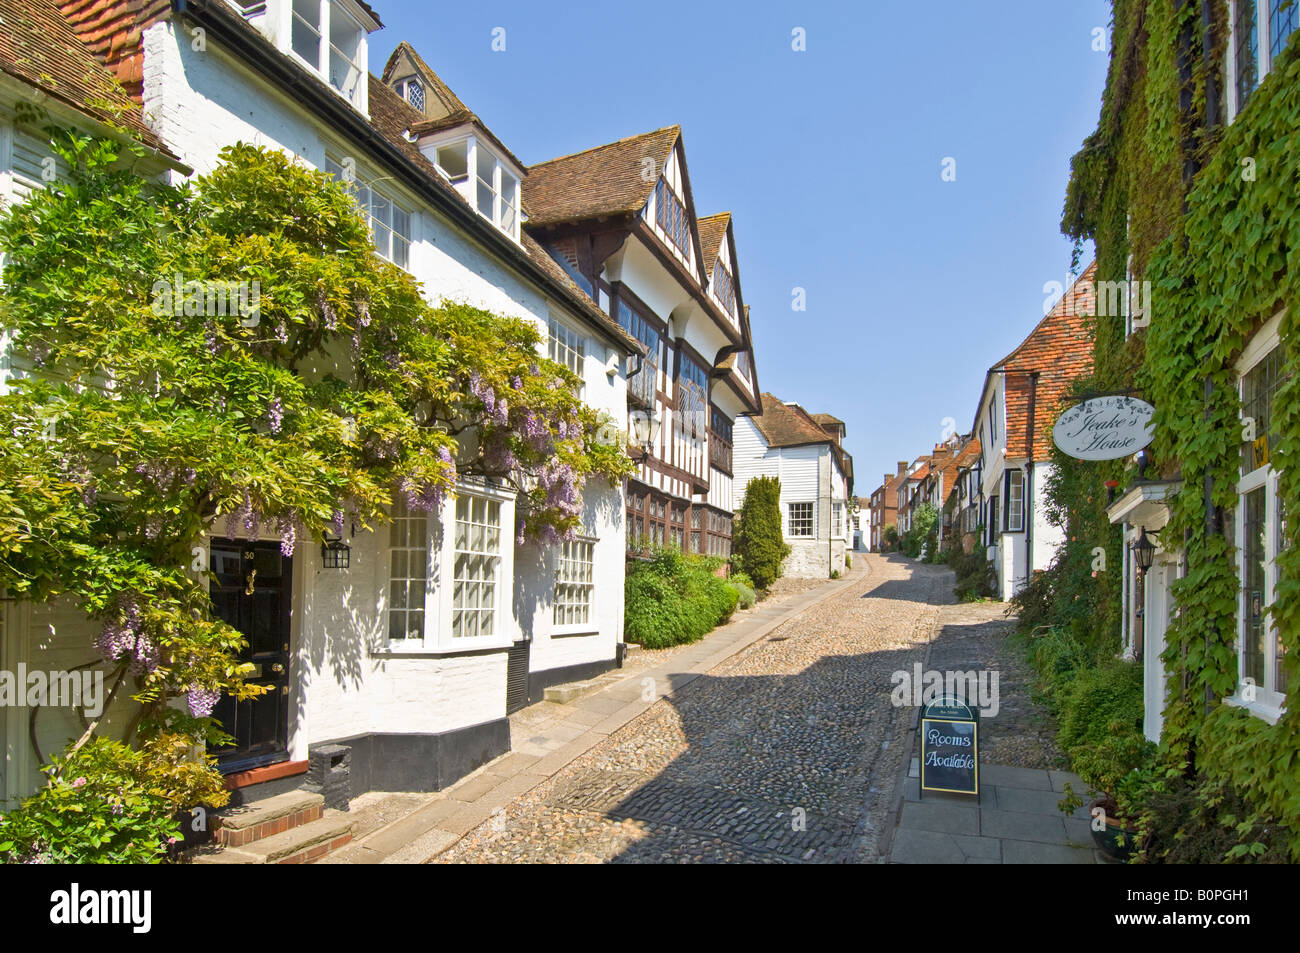 A view looking up Mermaid street (the most famous in Rye) showing its typical architecture. - Stock Image